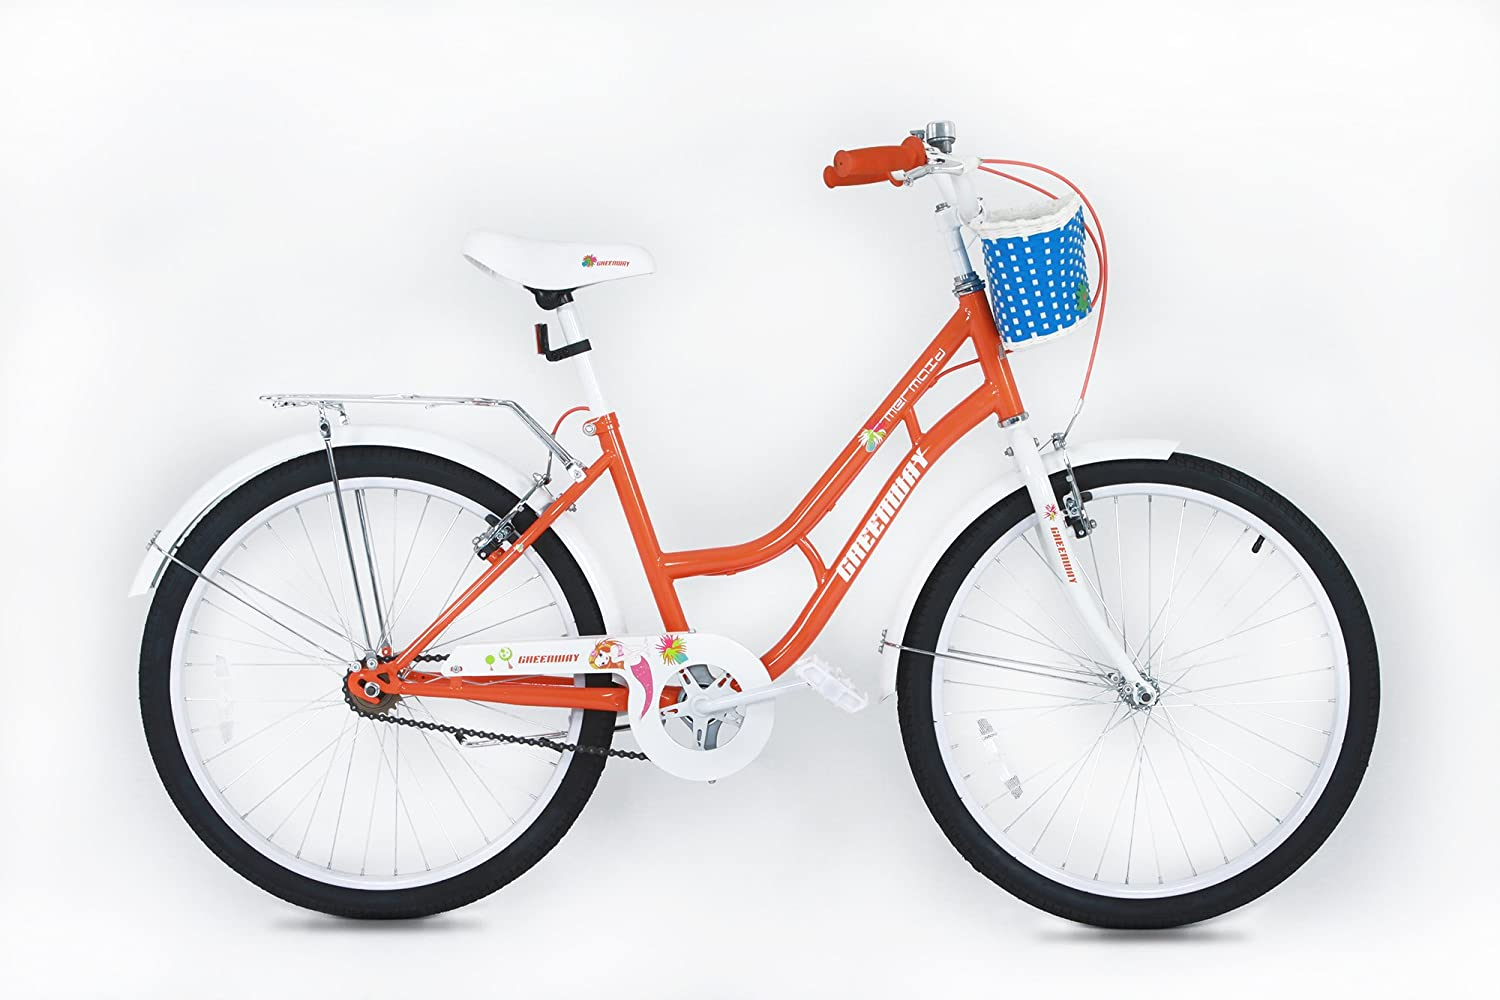 Princess Girls bike- orange 20 inch wheel Bicycle with basket - Suitable for AGE 5-12 YEARS OL D- Height 3' 10  - 4' 6